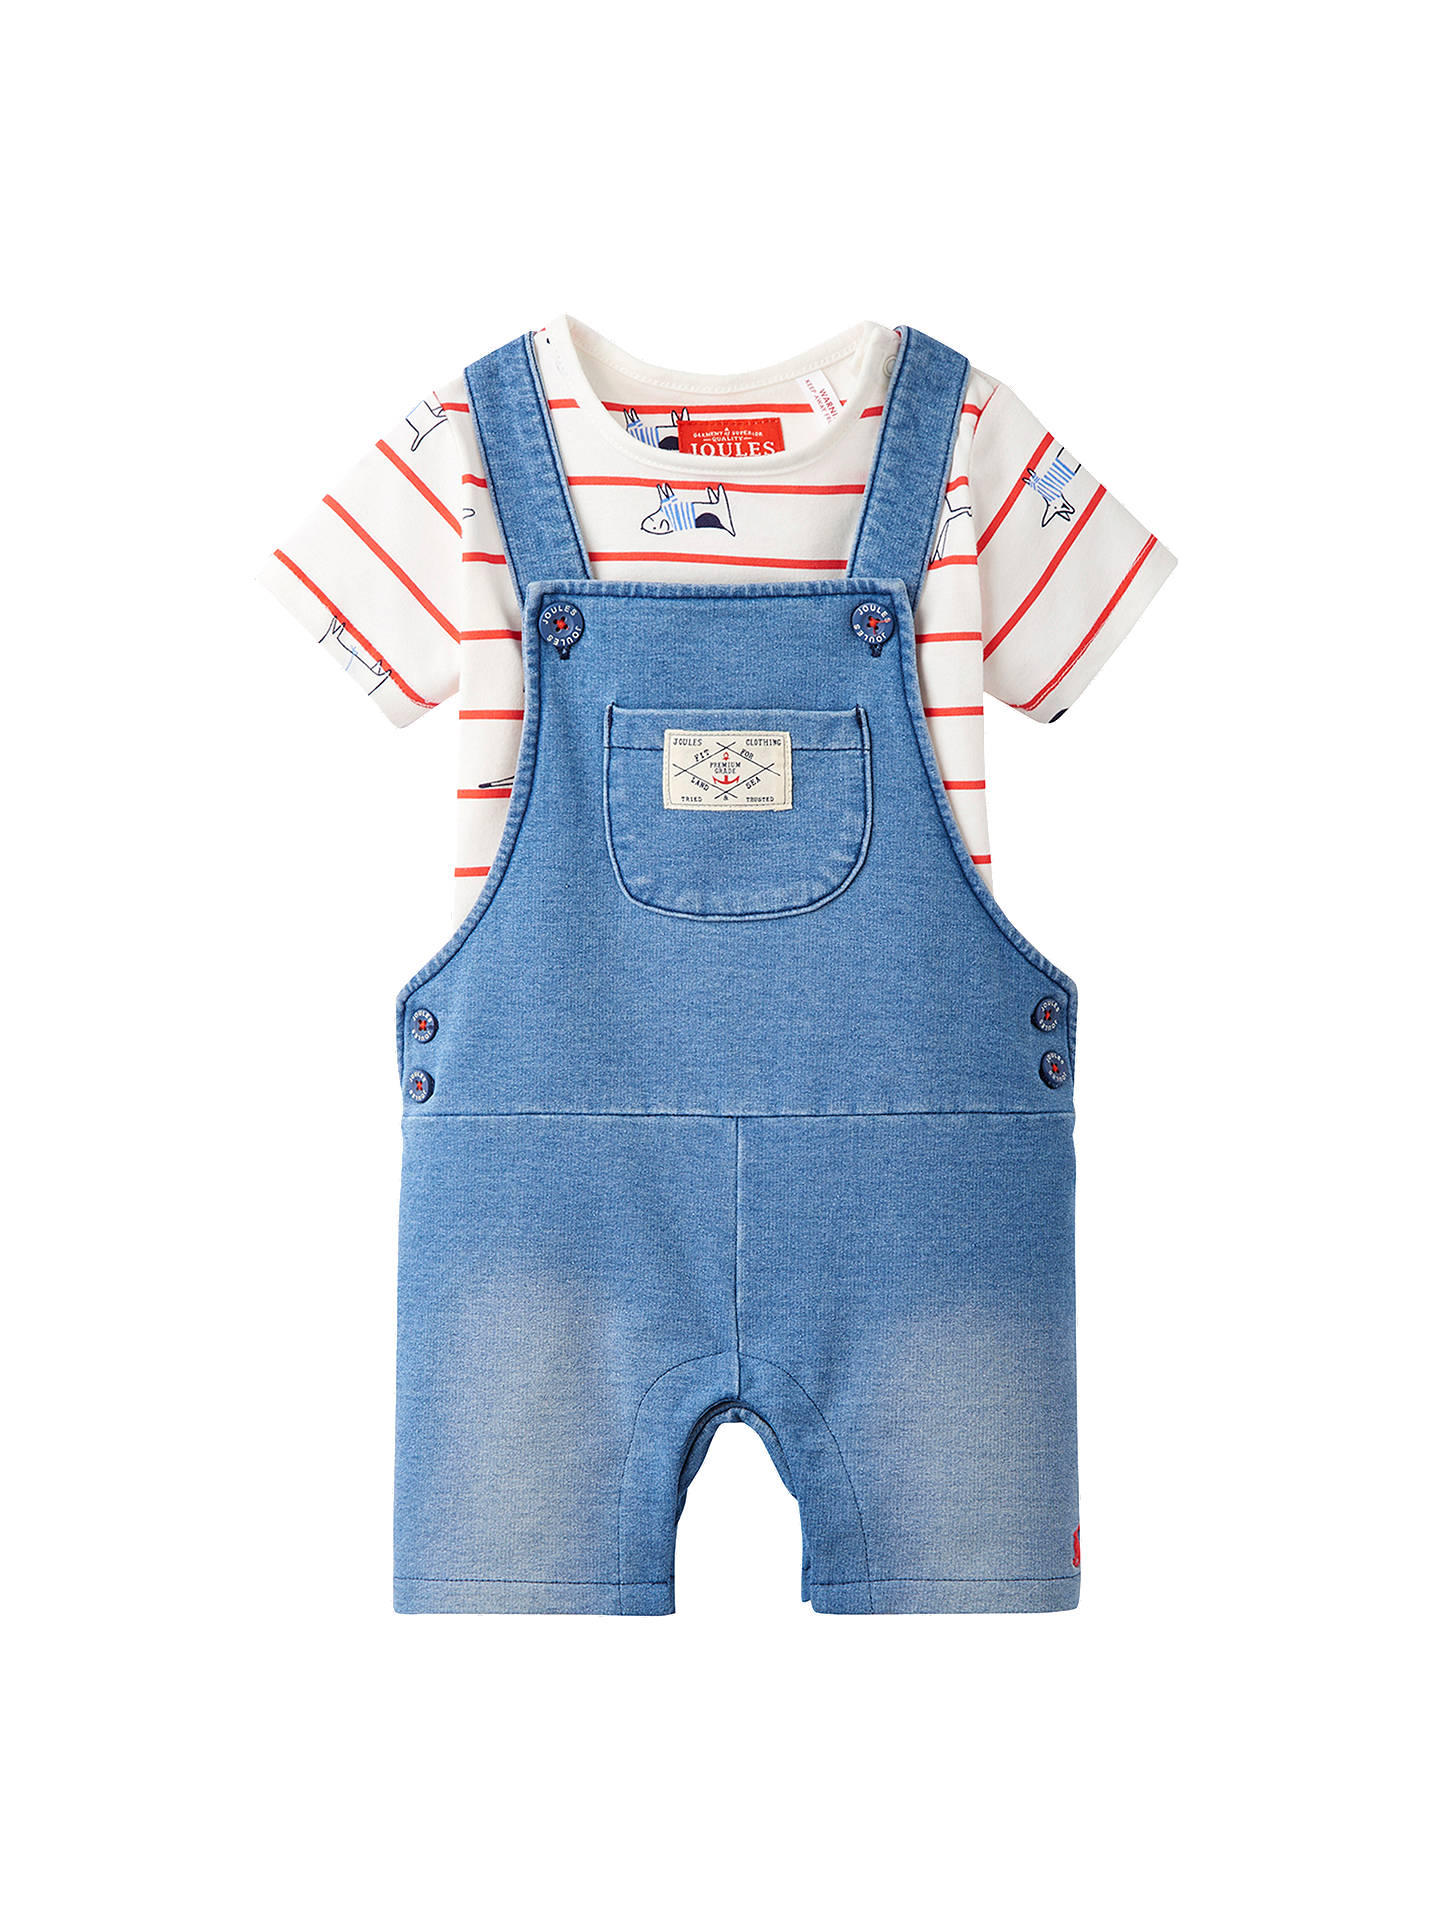 aeb105a2fb48 Baby Joule Baby Duncan Denim Dungaree and Top Set